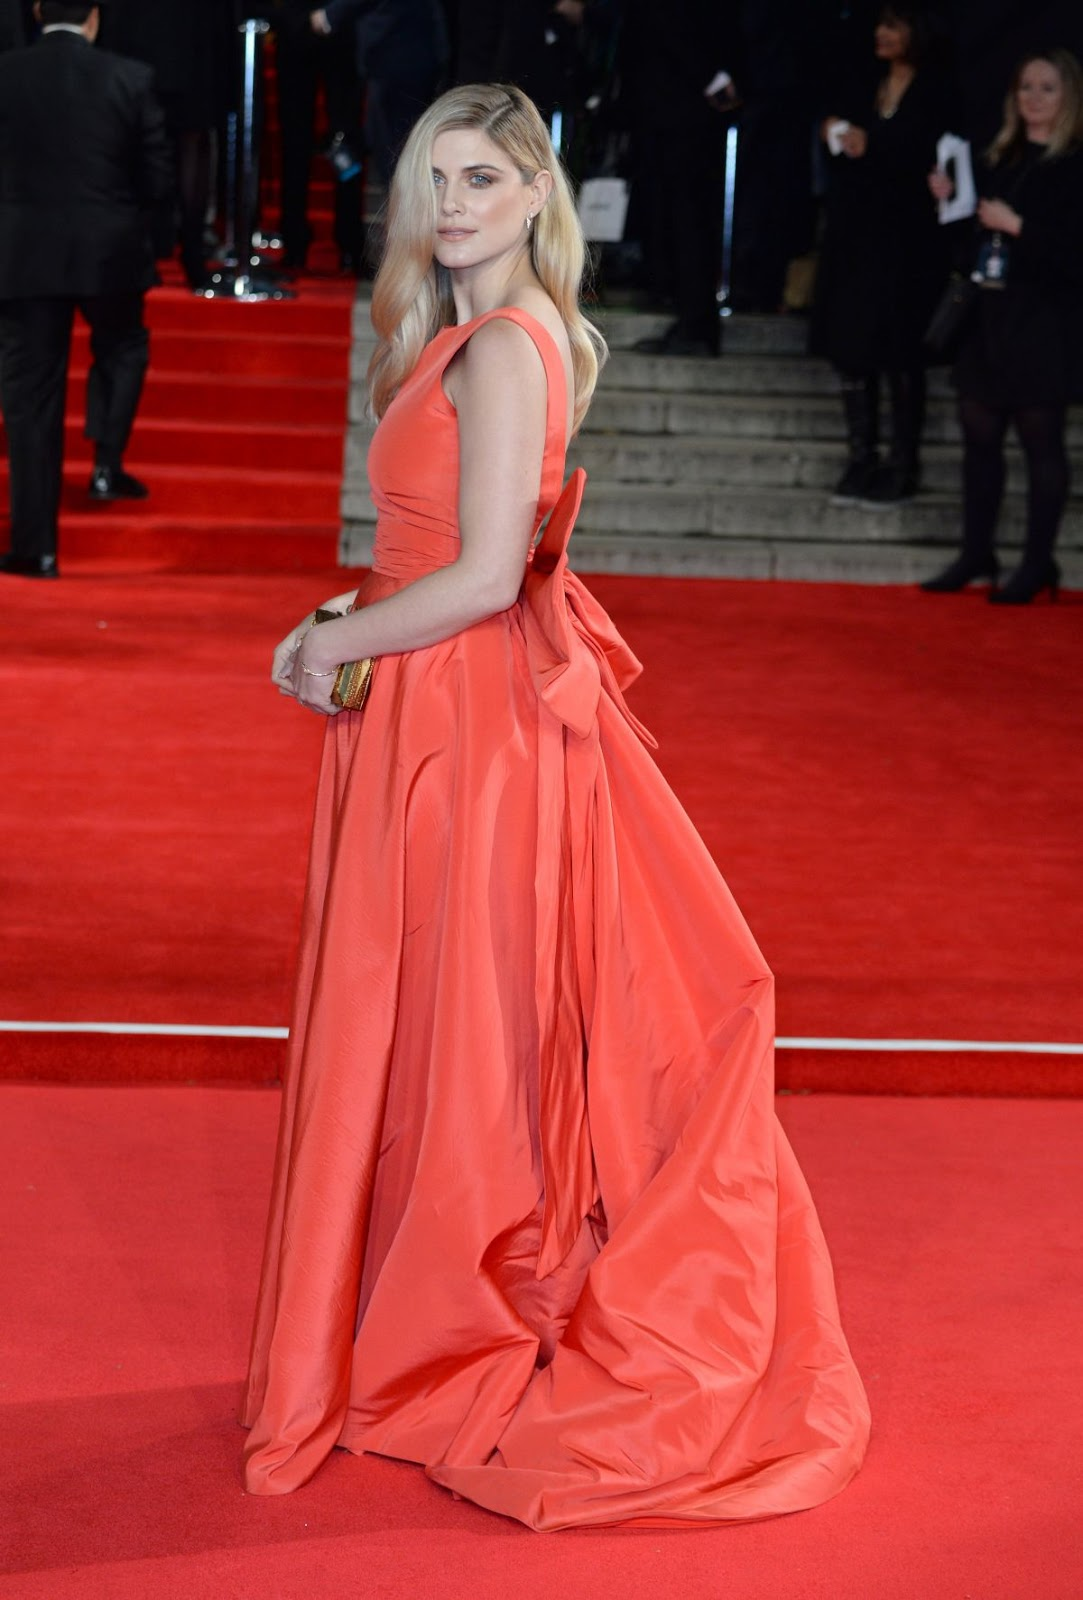 Full HQ Photos & Wallpapers of Made in Chelsea star Ashley James at Spectre Premiere in London